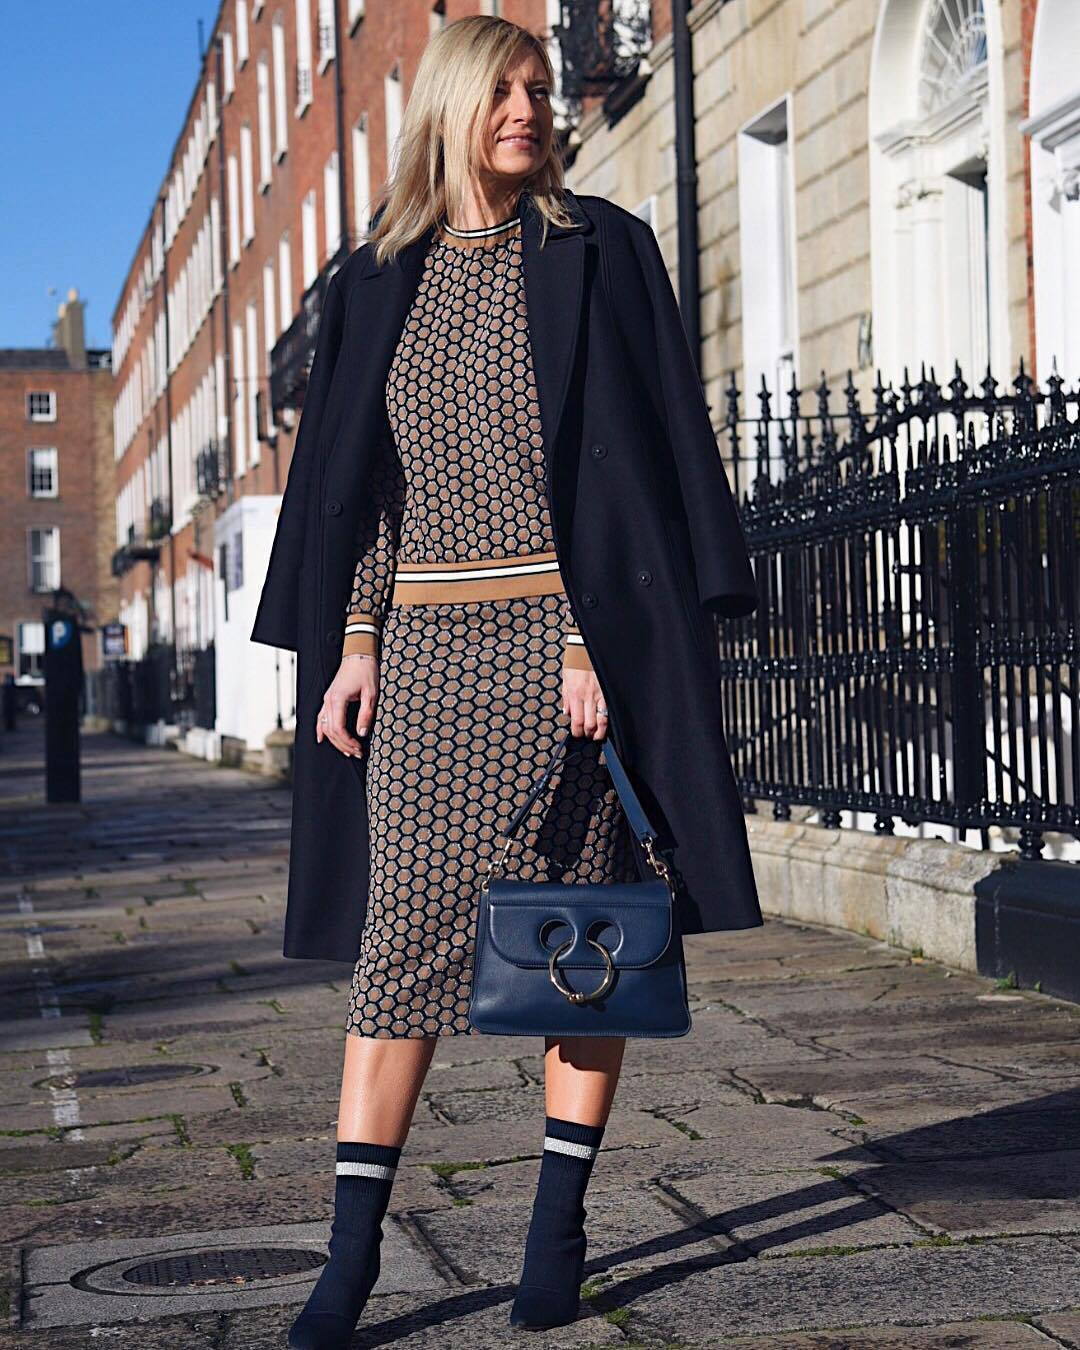 skirt midi skirt bodycon skirt h&m sweatshirt sock boots navy shoulder bag coat double breasted